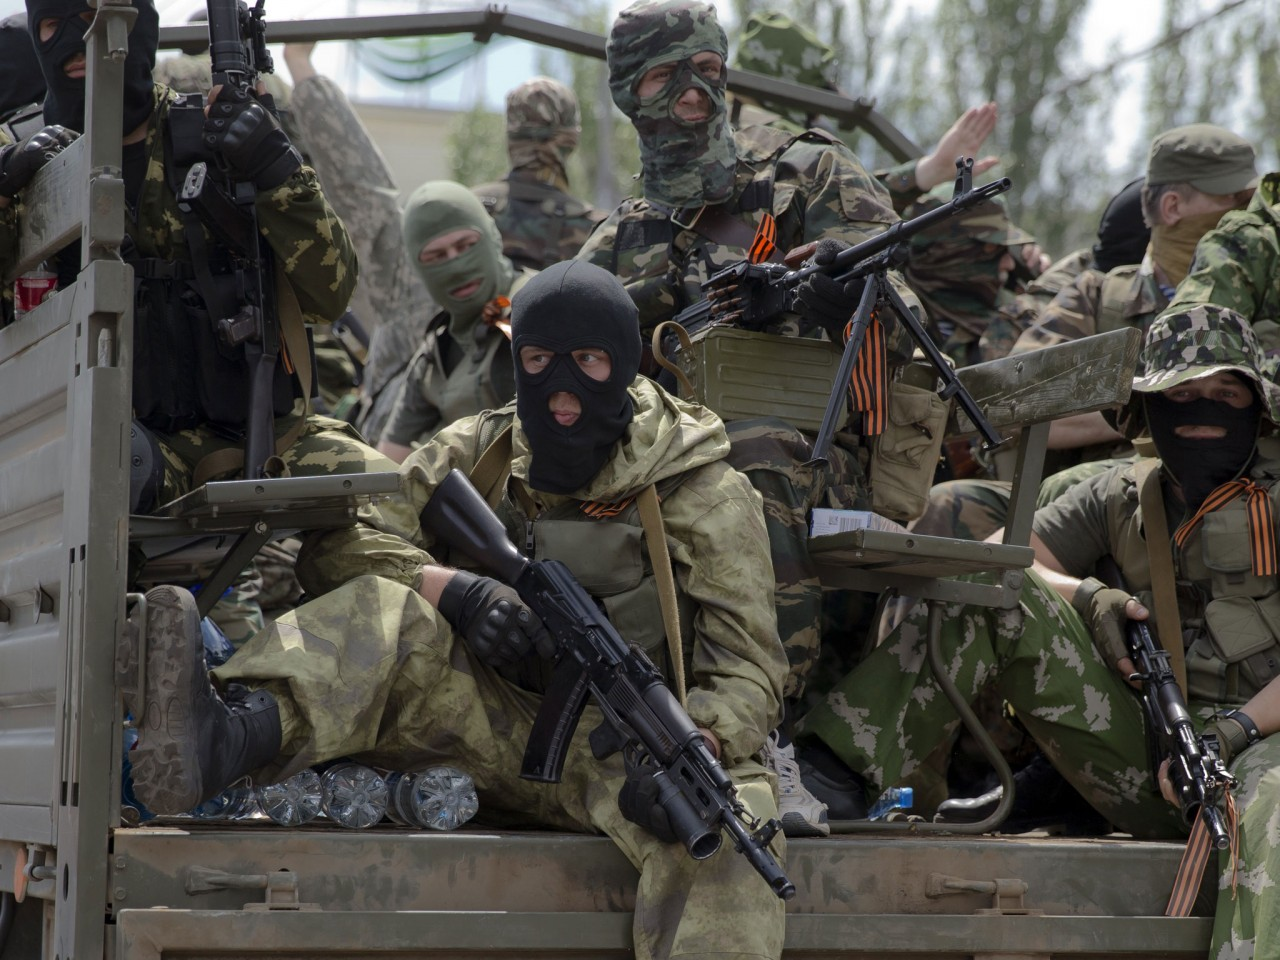 US to provide Lethal Weapons to Ukraine